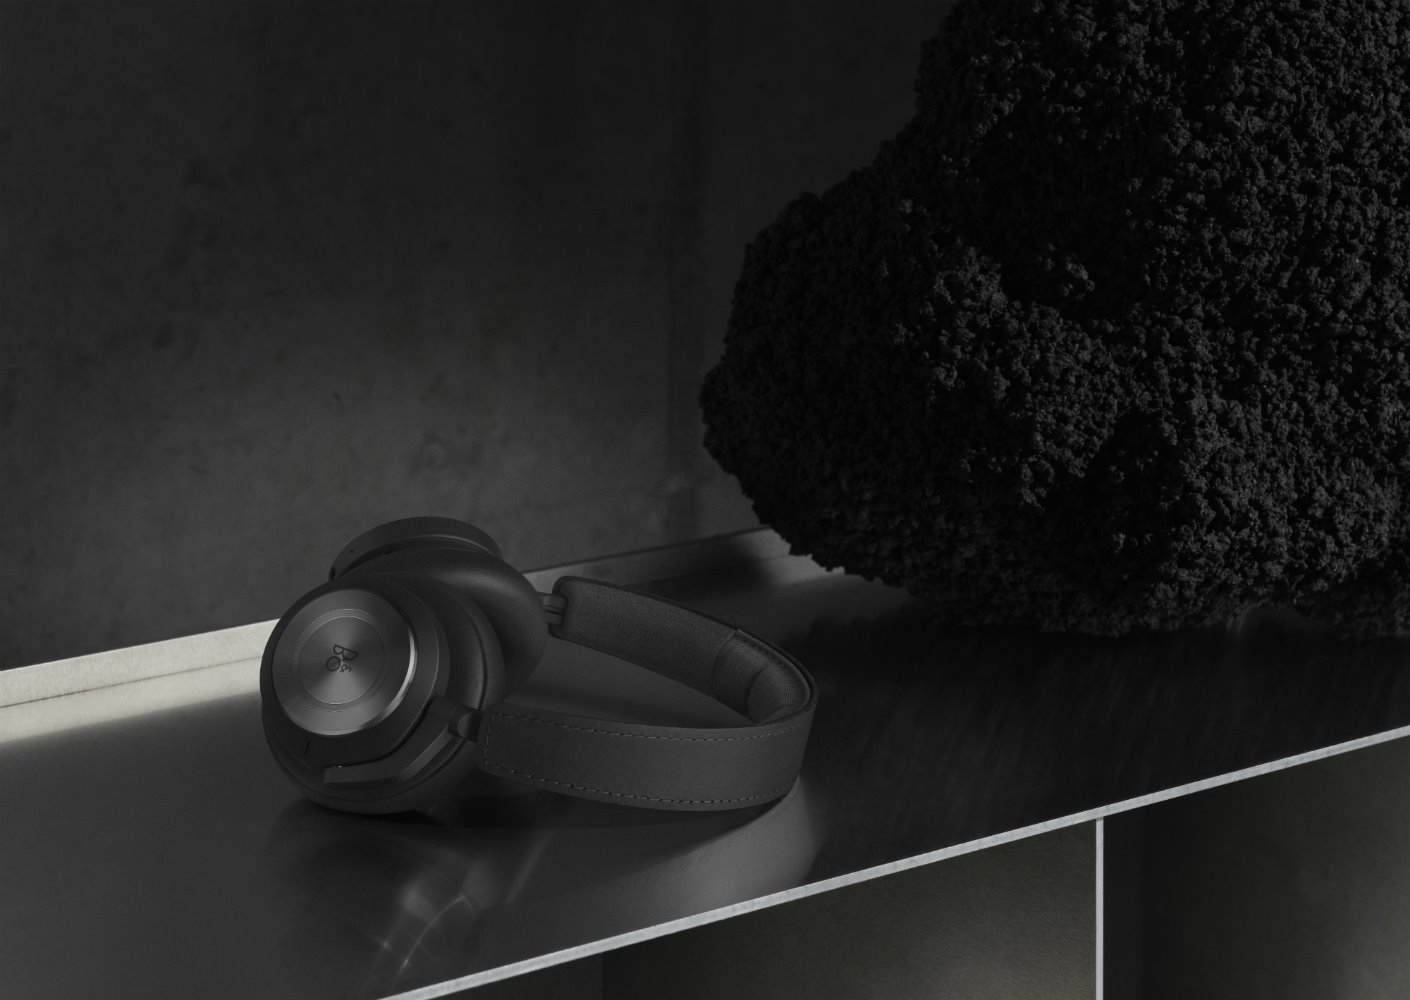 Beoplay H9 Bang & Olufsen